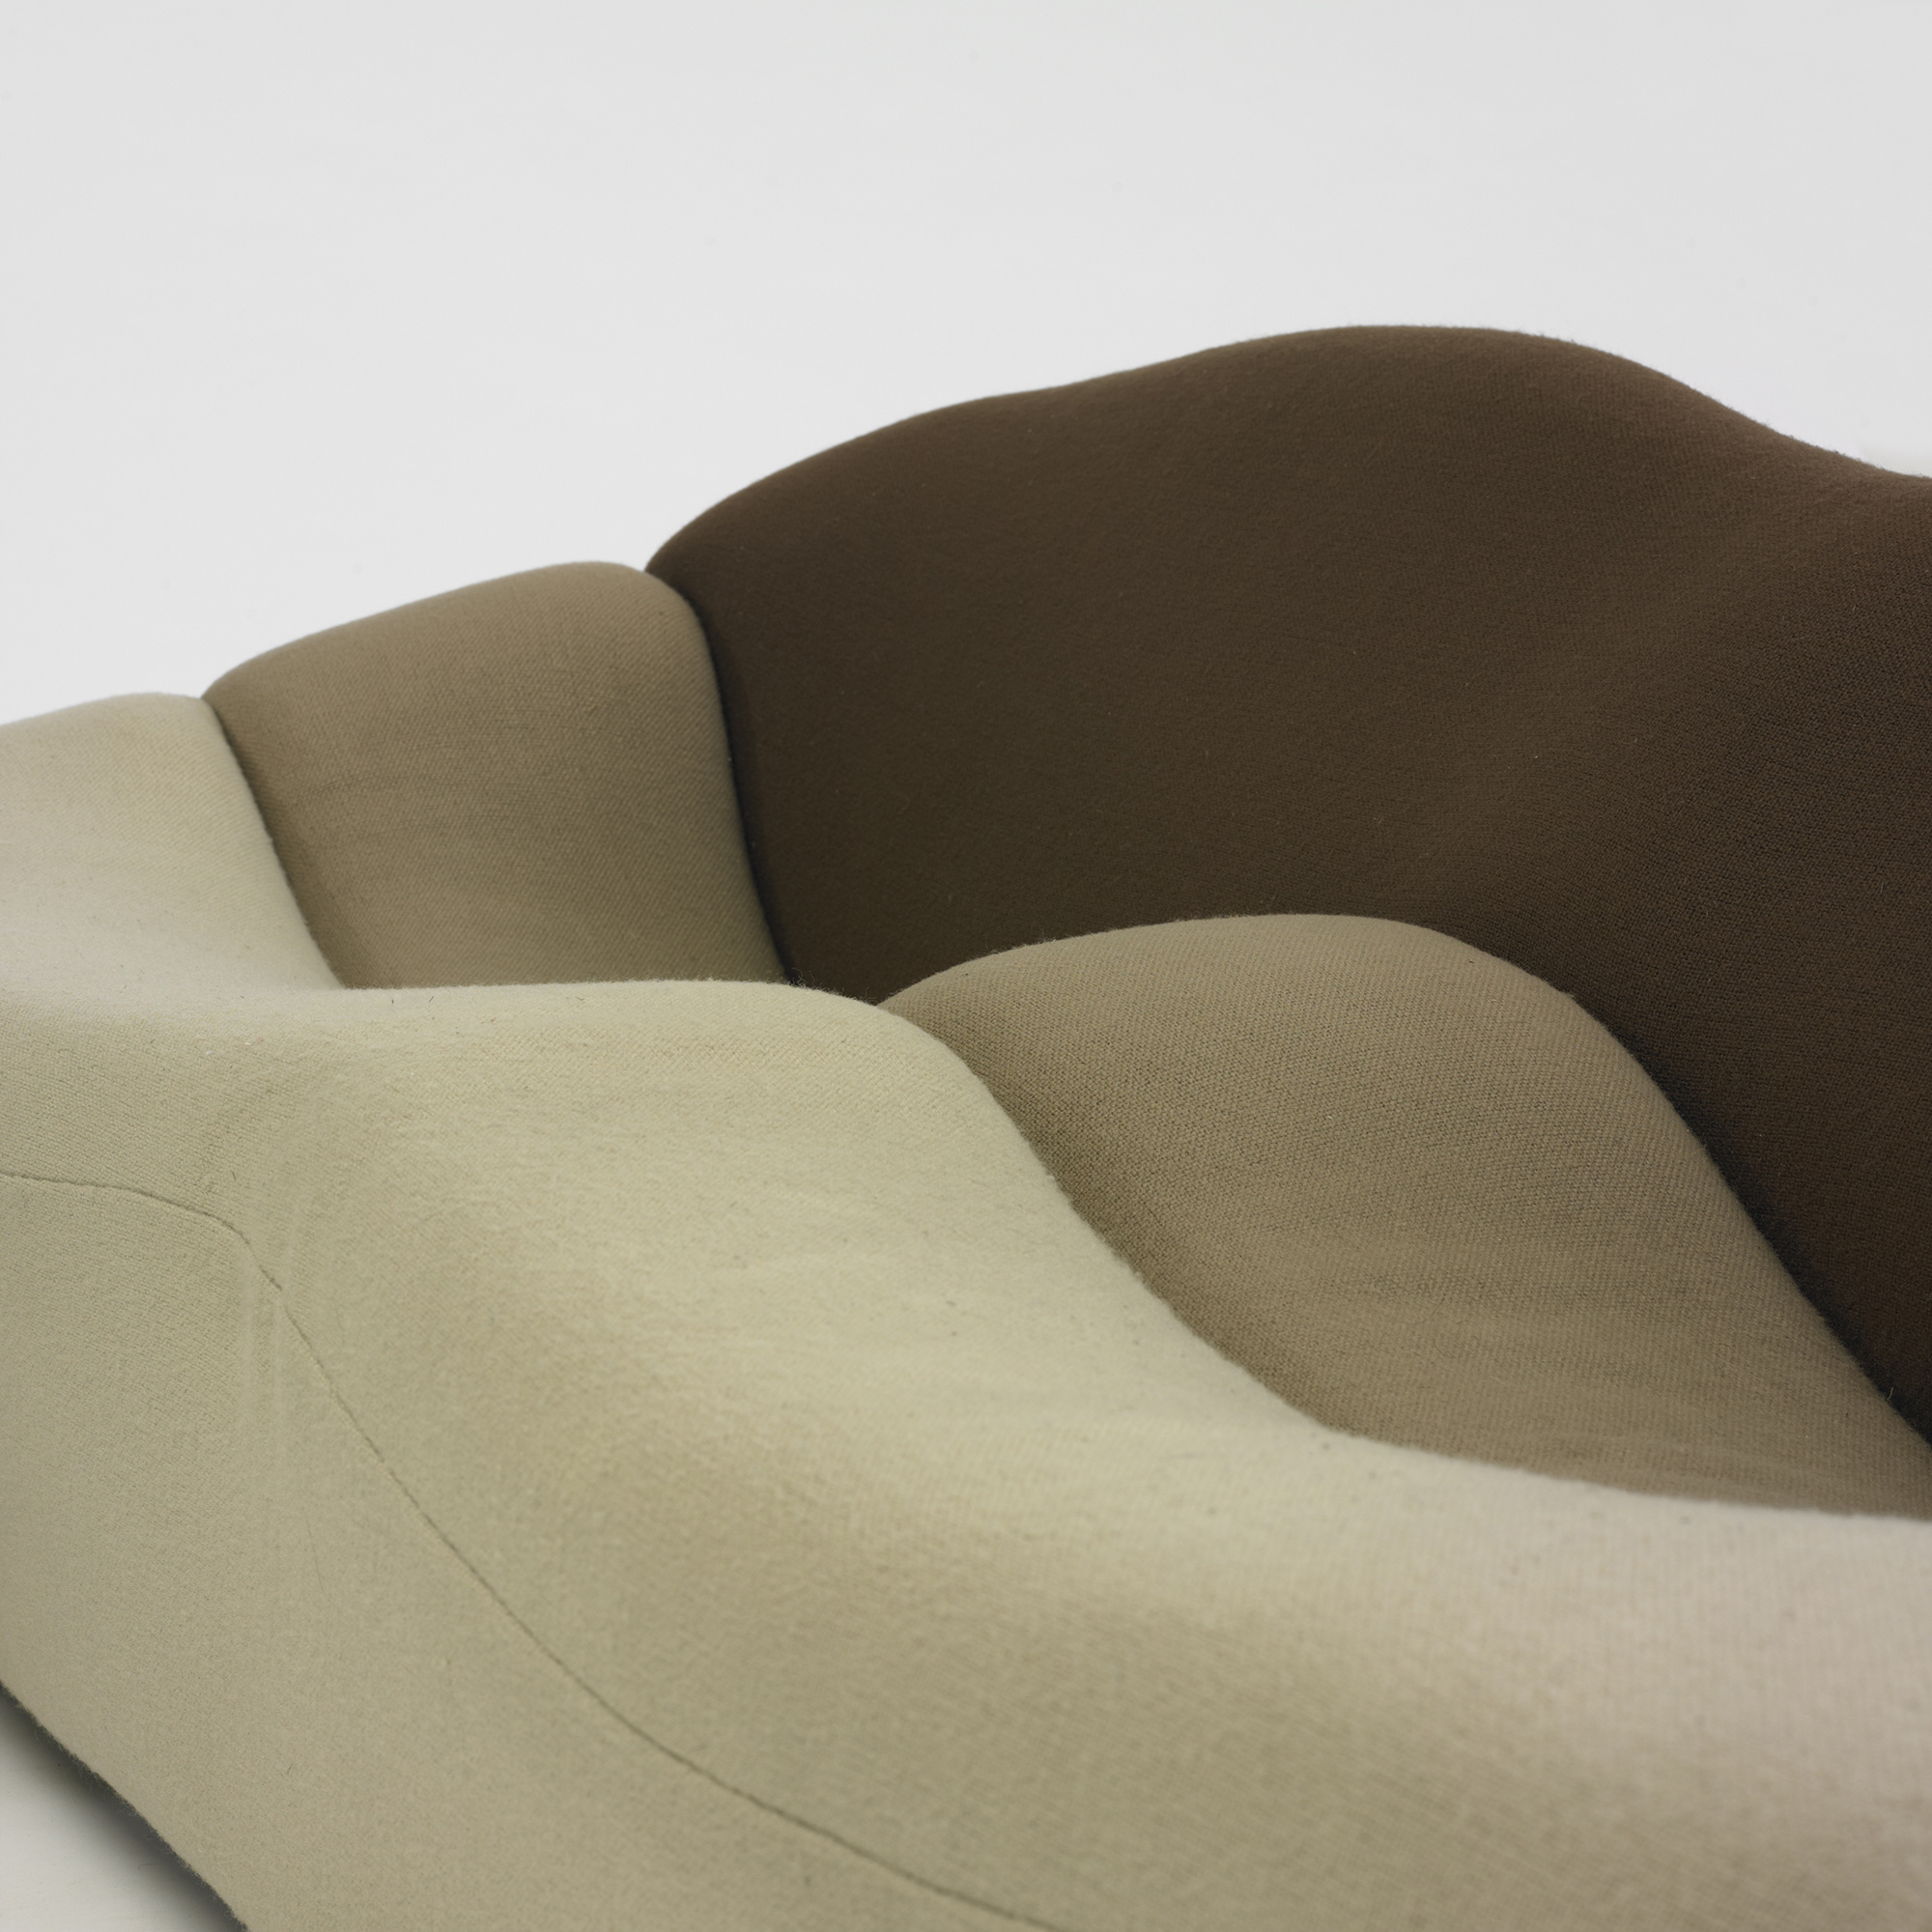 Modern Home Design October 2012: 449: PIERRE PAULIN, ABCD Sofa And Lounge Chair